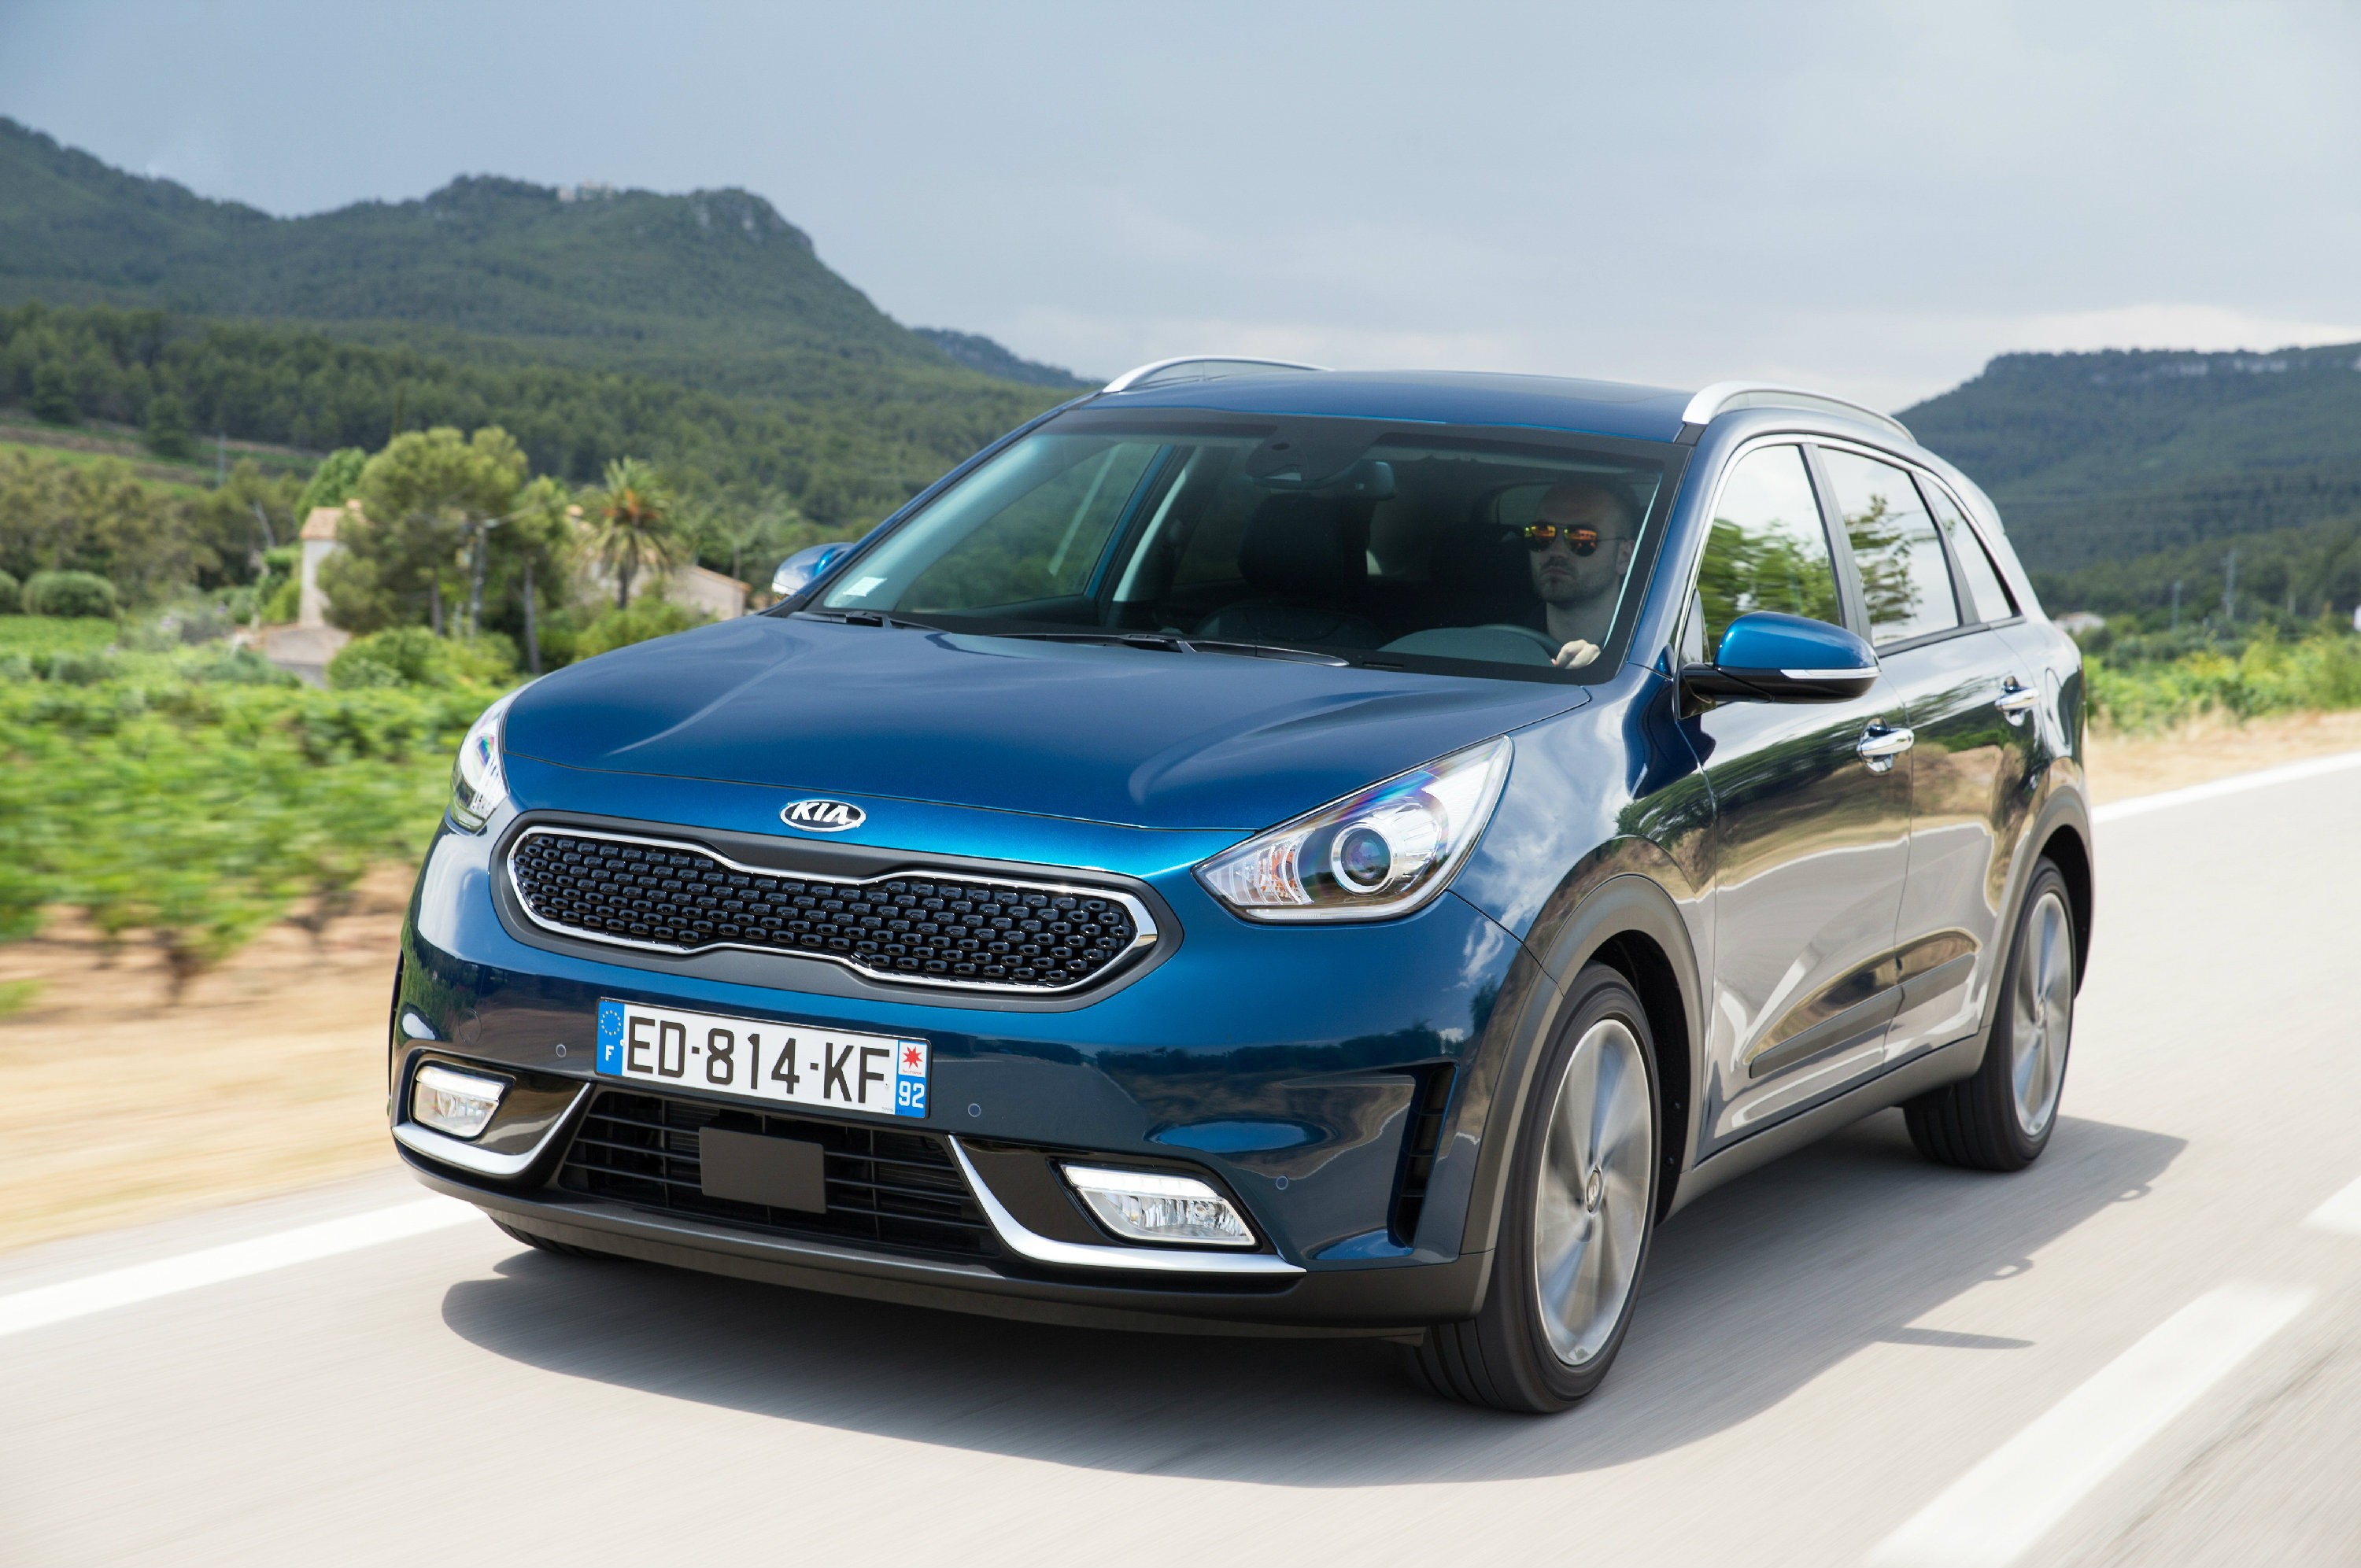 kia niro 0 to 100 km h acceleration test slightly faster than expected autoevolution. Black Bedroom Furniture Sets. Home Design Ideas